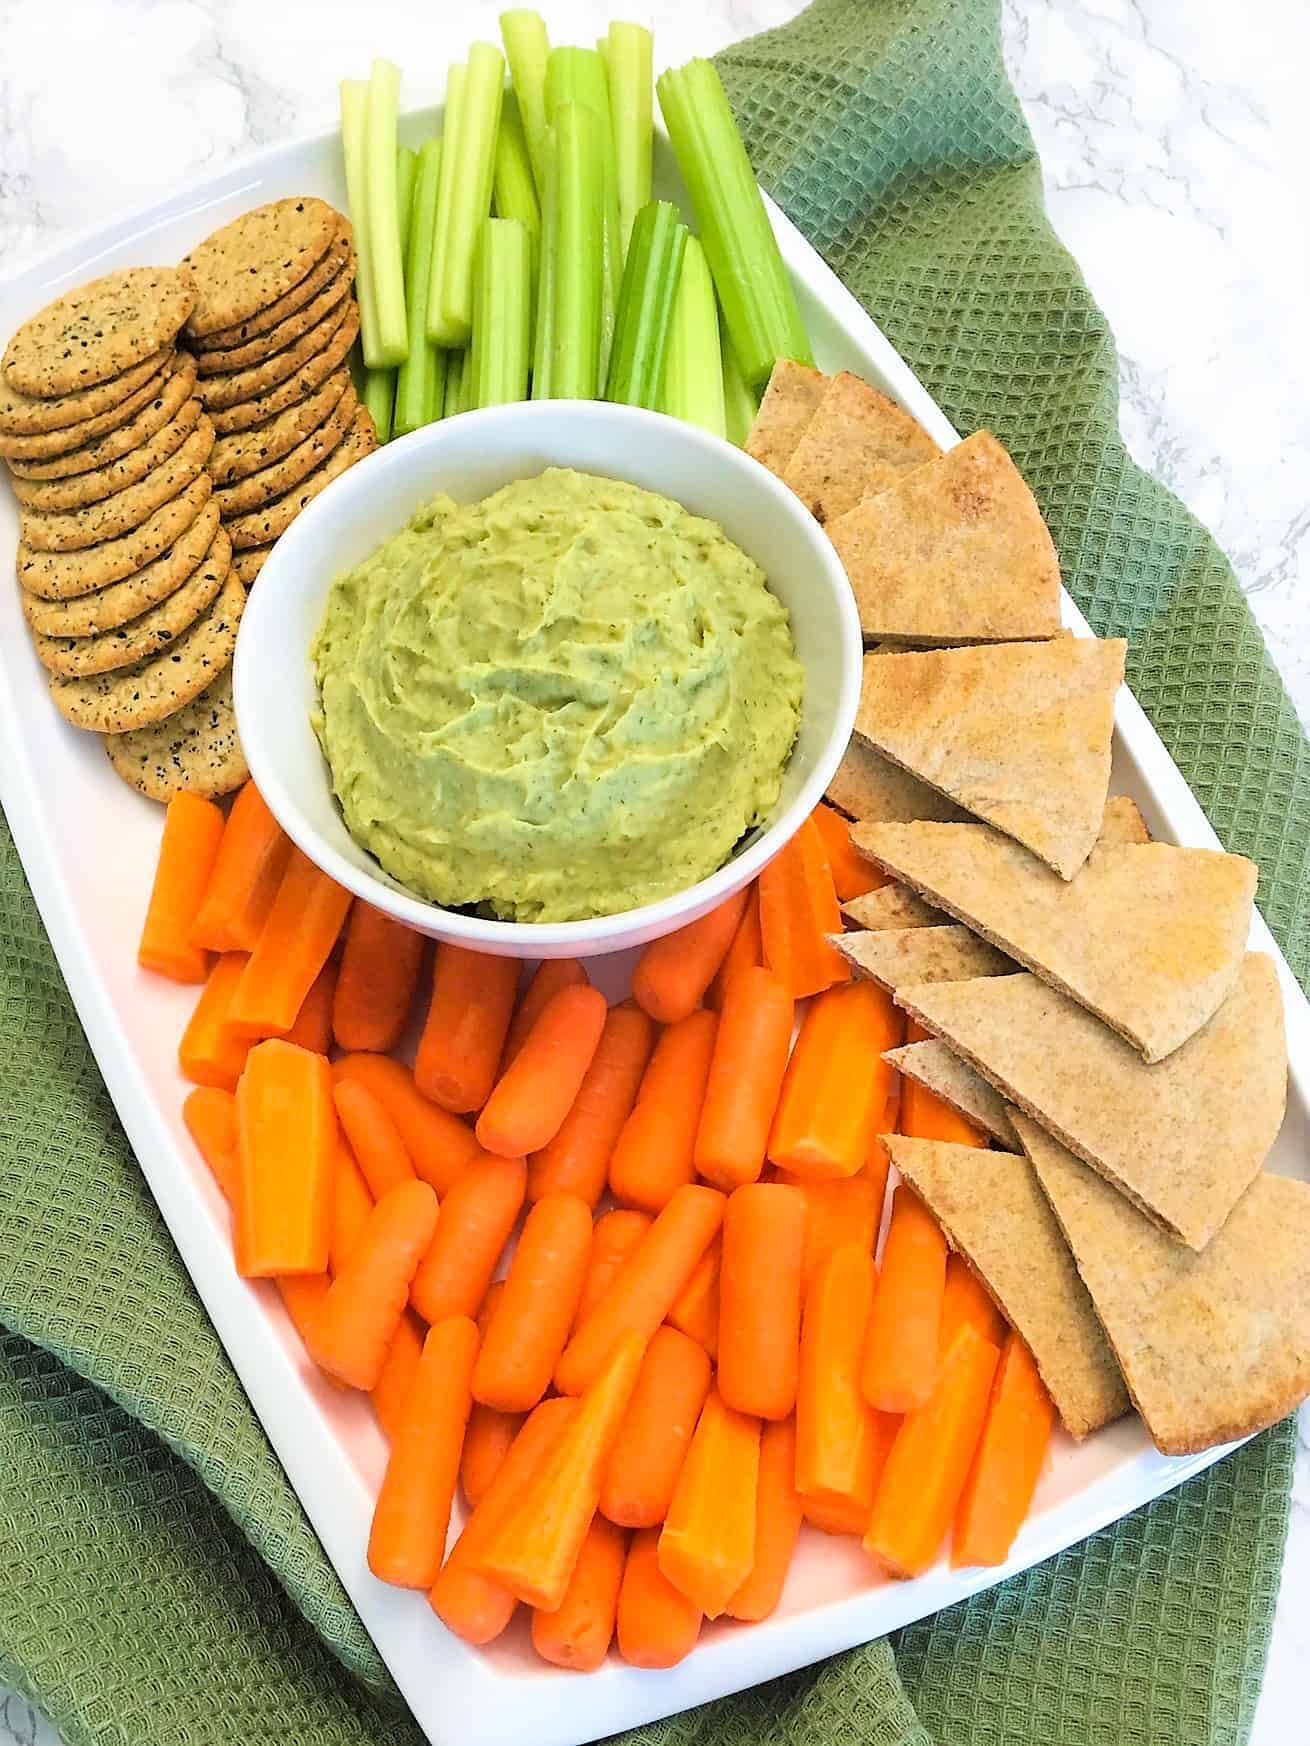 White Bean Dip on tray of veggies and crackers